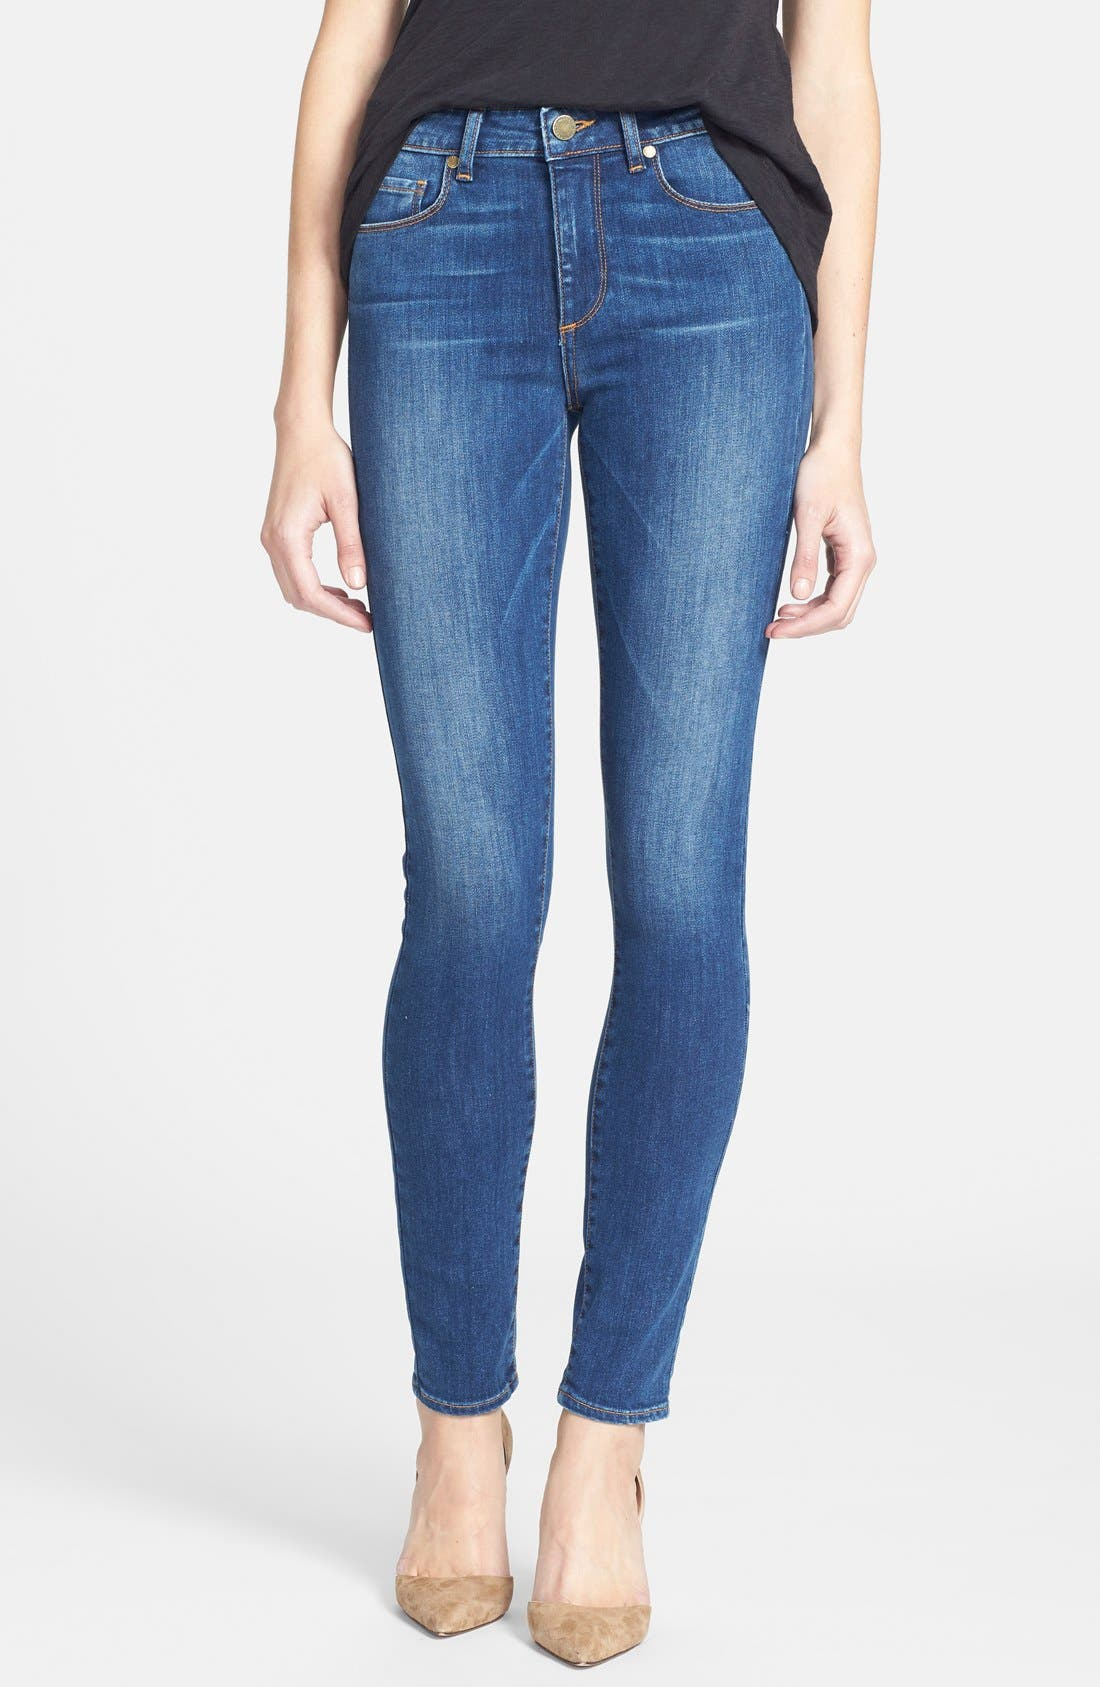 Alternate Image 1 Selected - Paige Denim 'Hoxton' Ultra Skinny Jeans (Constance)